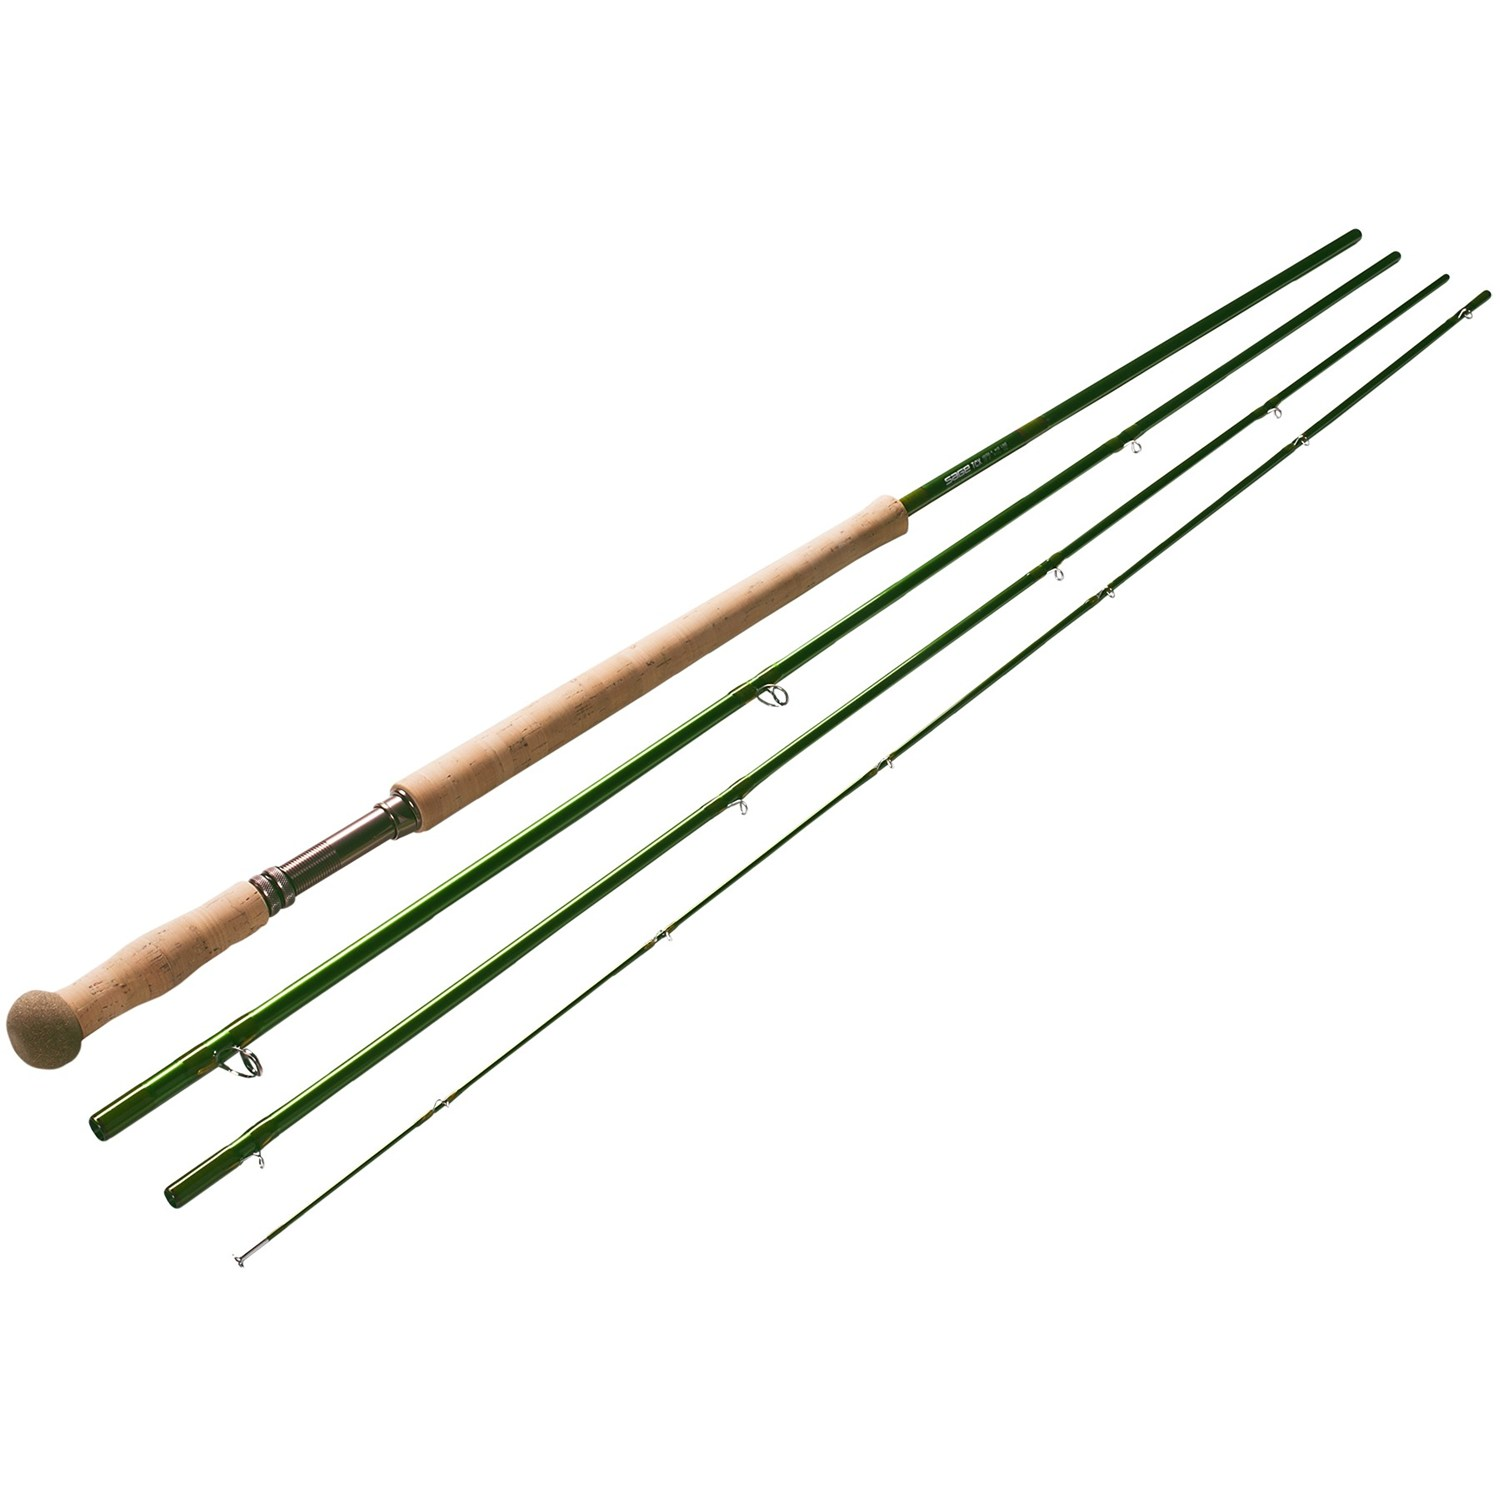 Famous fishing pole clip art for Pictures of fishing poles